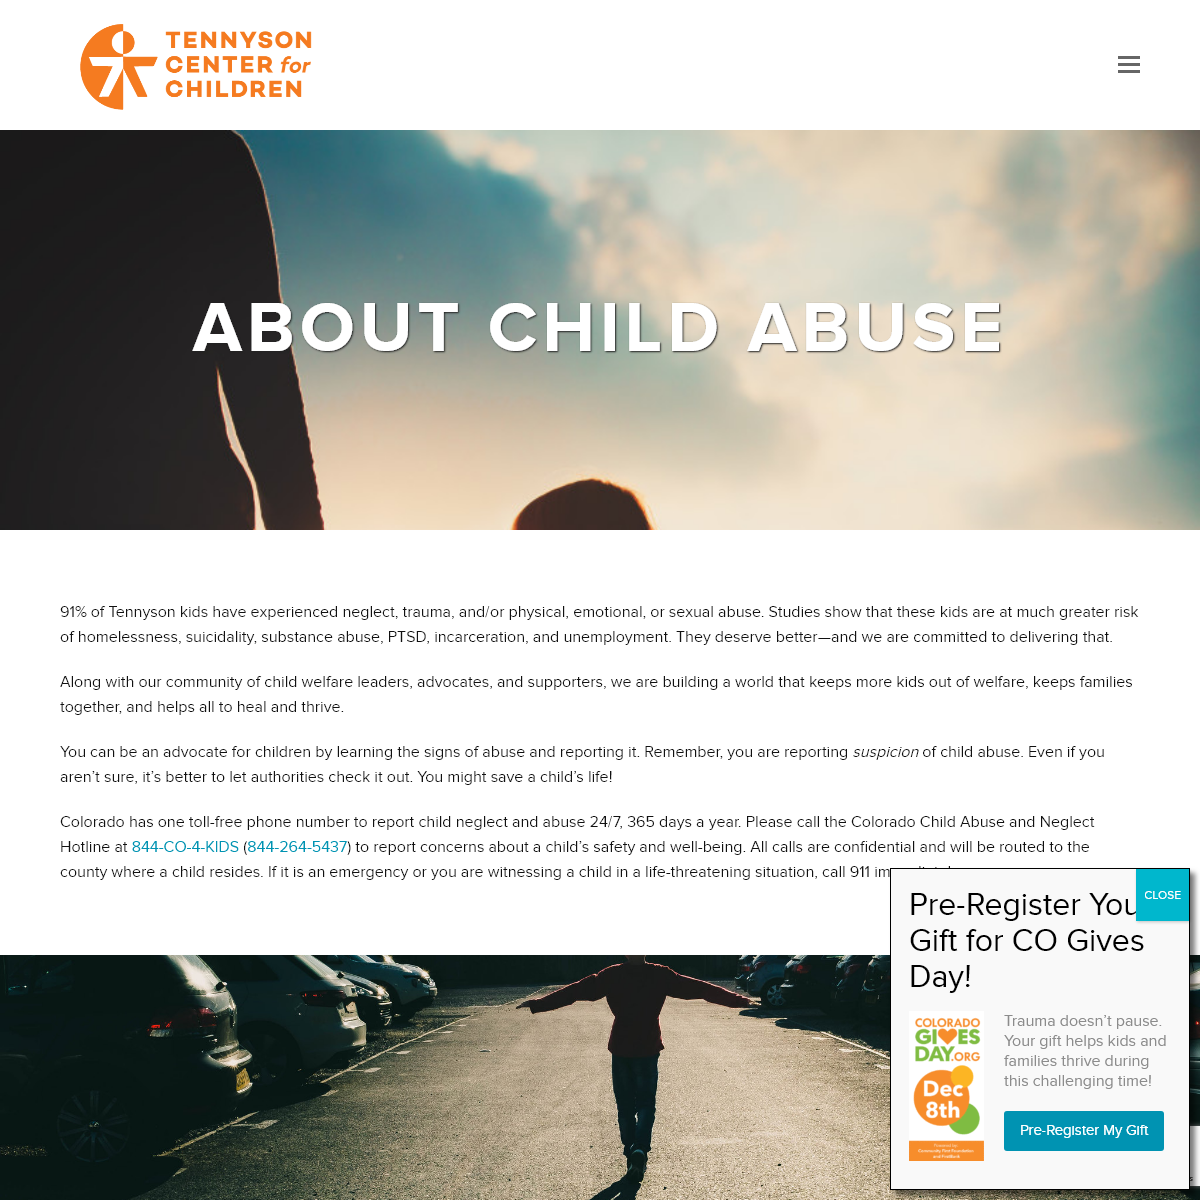 About Child Abuse -- Tennyson Center for Children